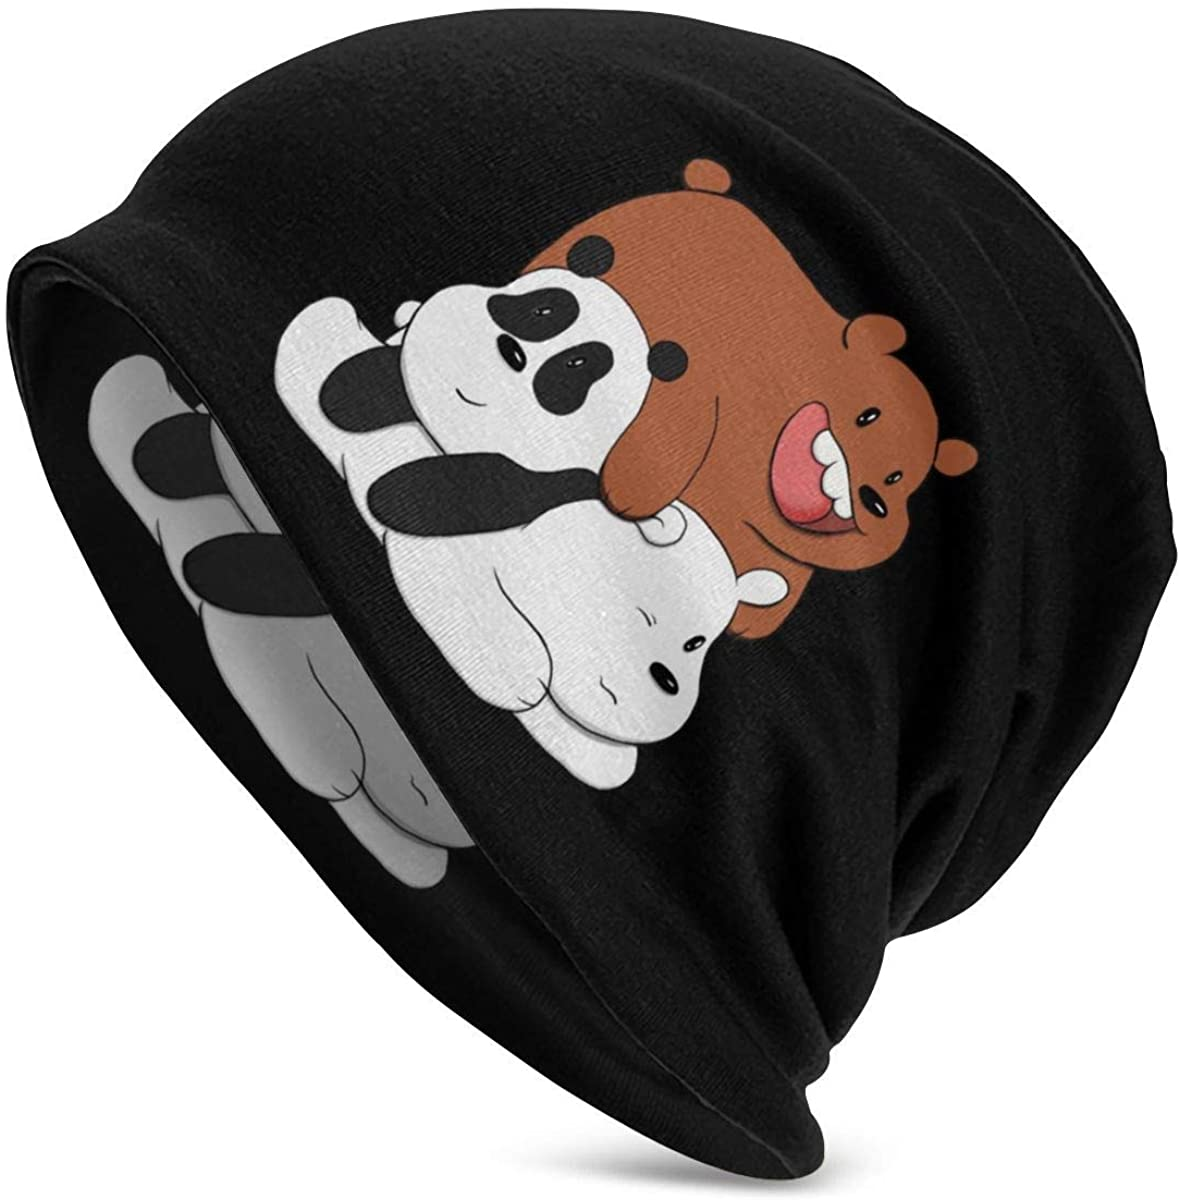 Cool We Bare Bears Thin Unisex Adult Knit Hats Beanie Hat Winter Warm Printing Cap Black